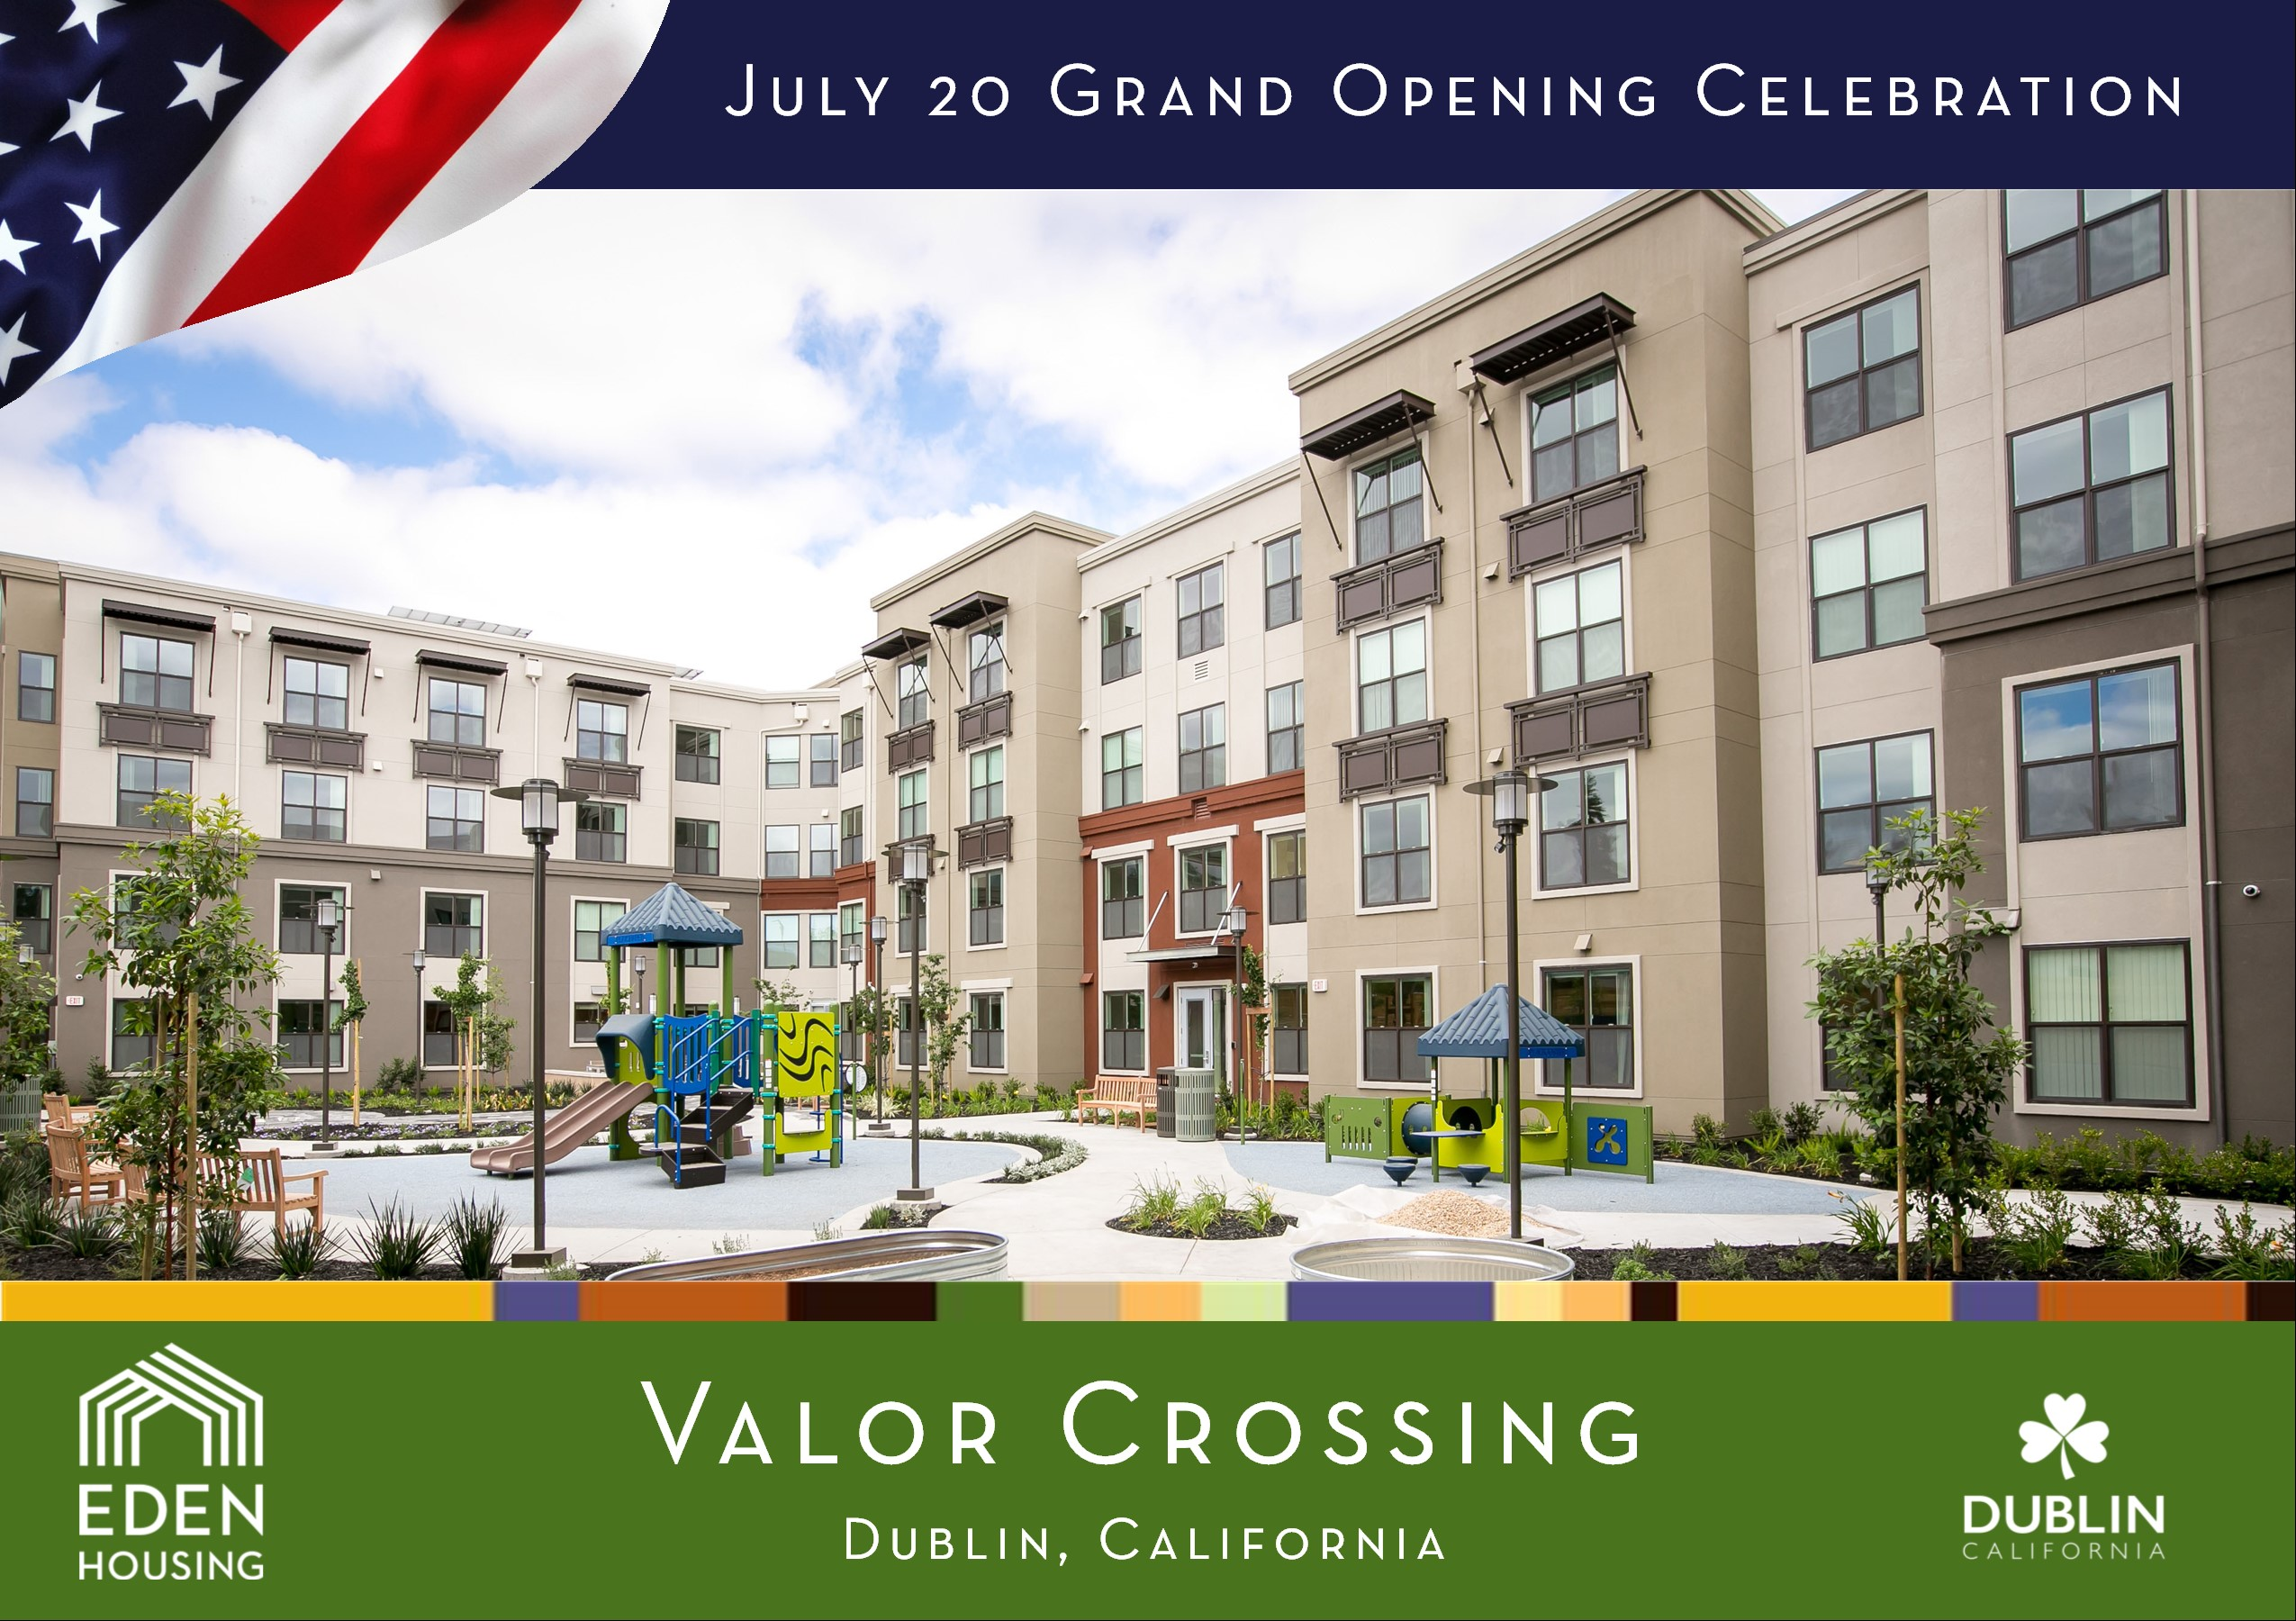 July 20 Valor Crossing Grand Opening